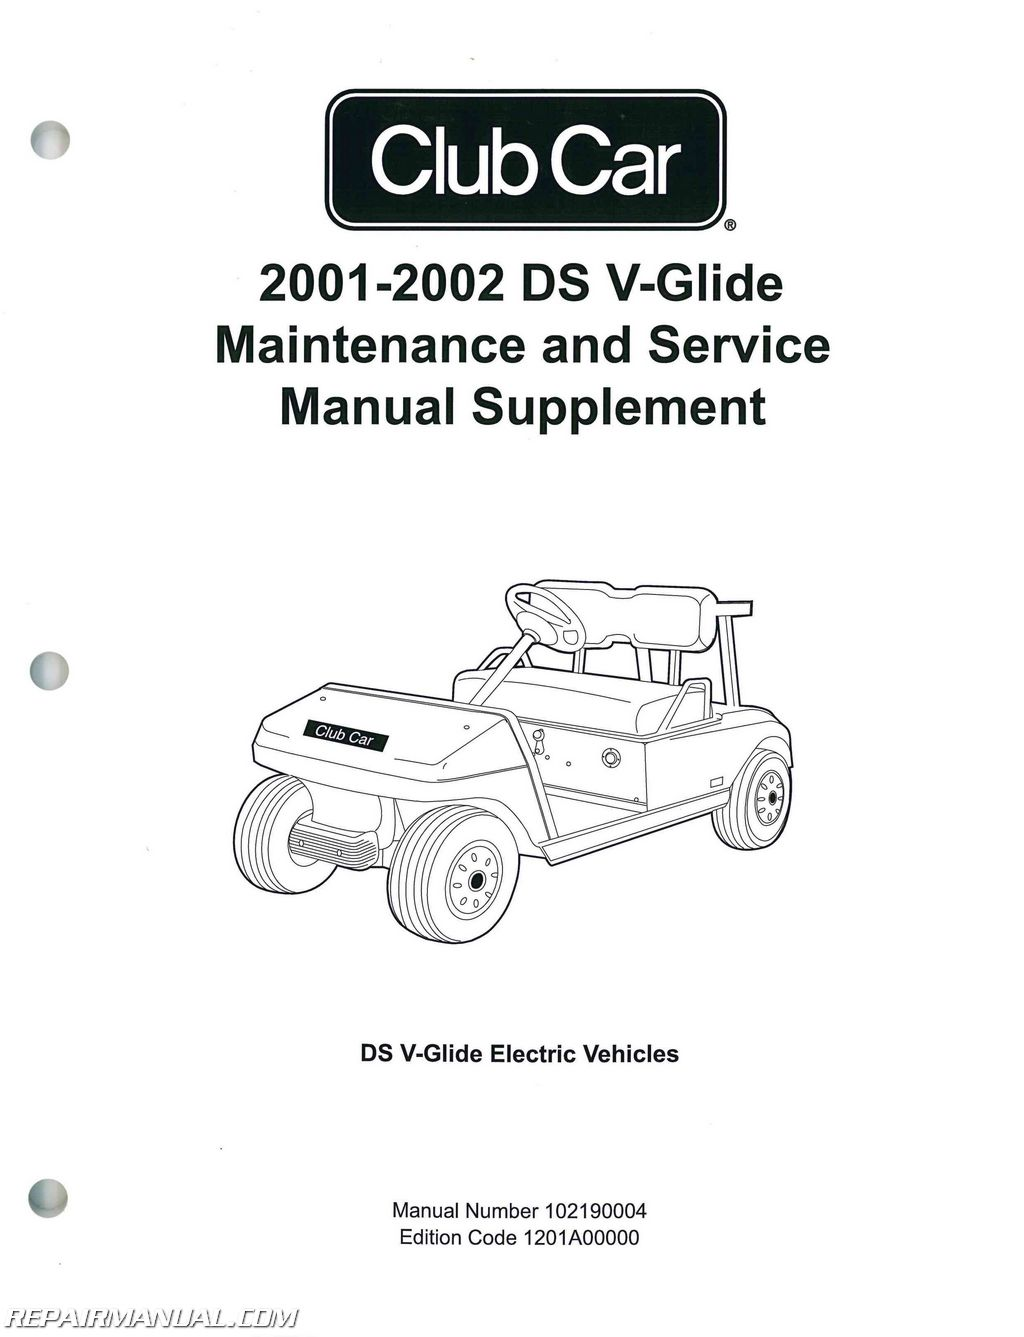 ... Wiring Diagrams Source · 2001 2002 club car ds v glide golf car  maintenance and service rh repairmanual com Electric